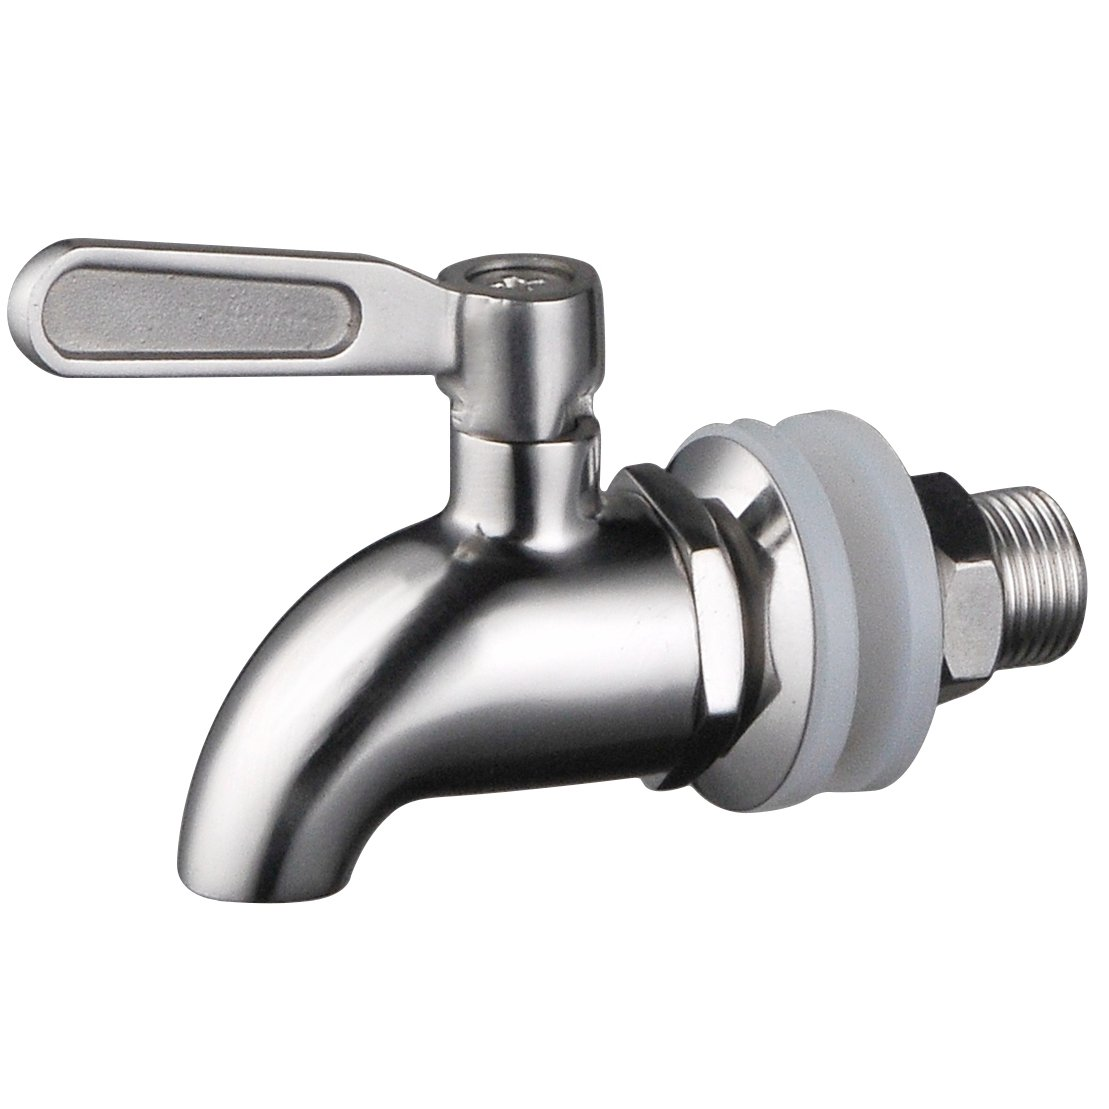 Stainless Works SSS010 Stainless Steel Beverage Dispenser Replacement Spigot (Fits 5/8 inch or 16 mm opening Lifetime Warranty) by Stainless Works